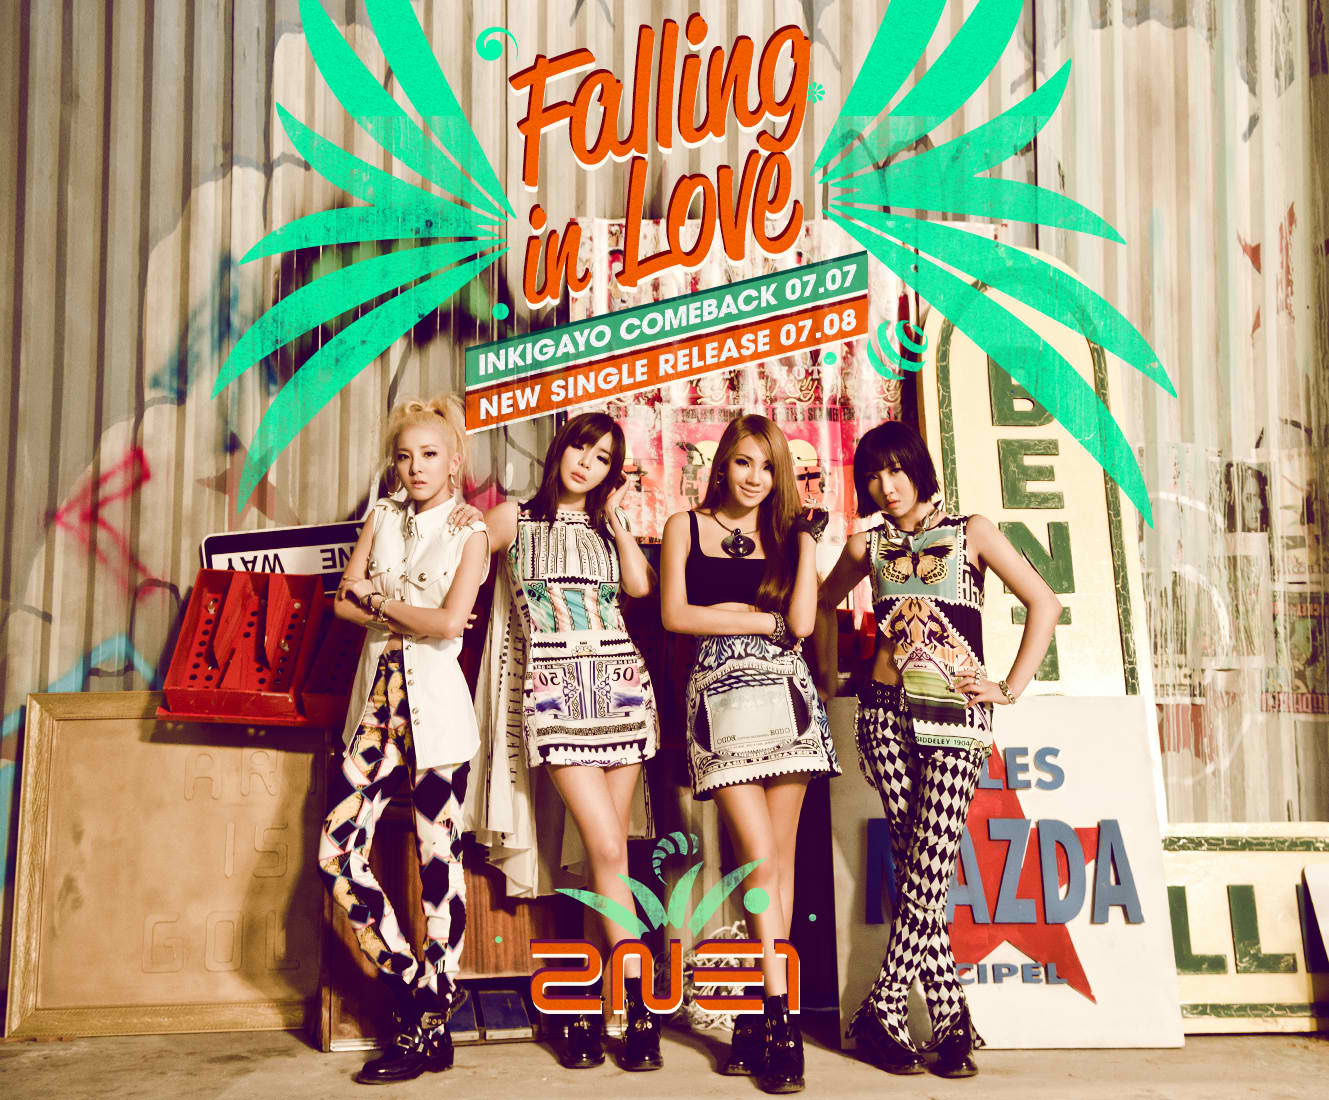 http://ohdara.files.wordpress.com/2013/07/2ne1-e28093-e28098falling-in-love_-comeback-teaser.jpg